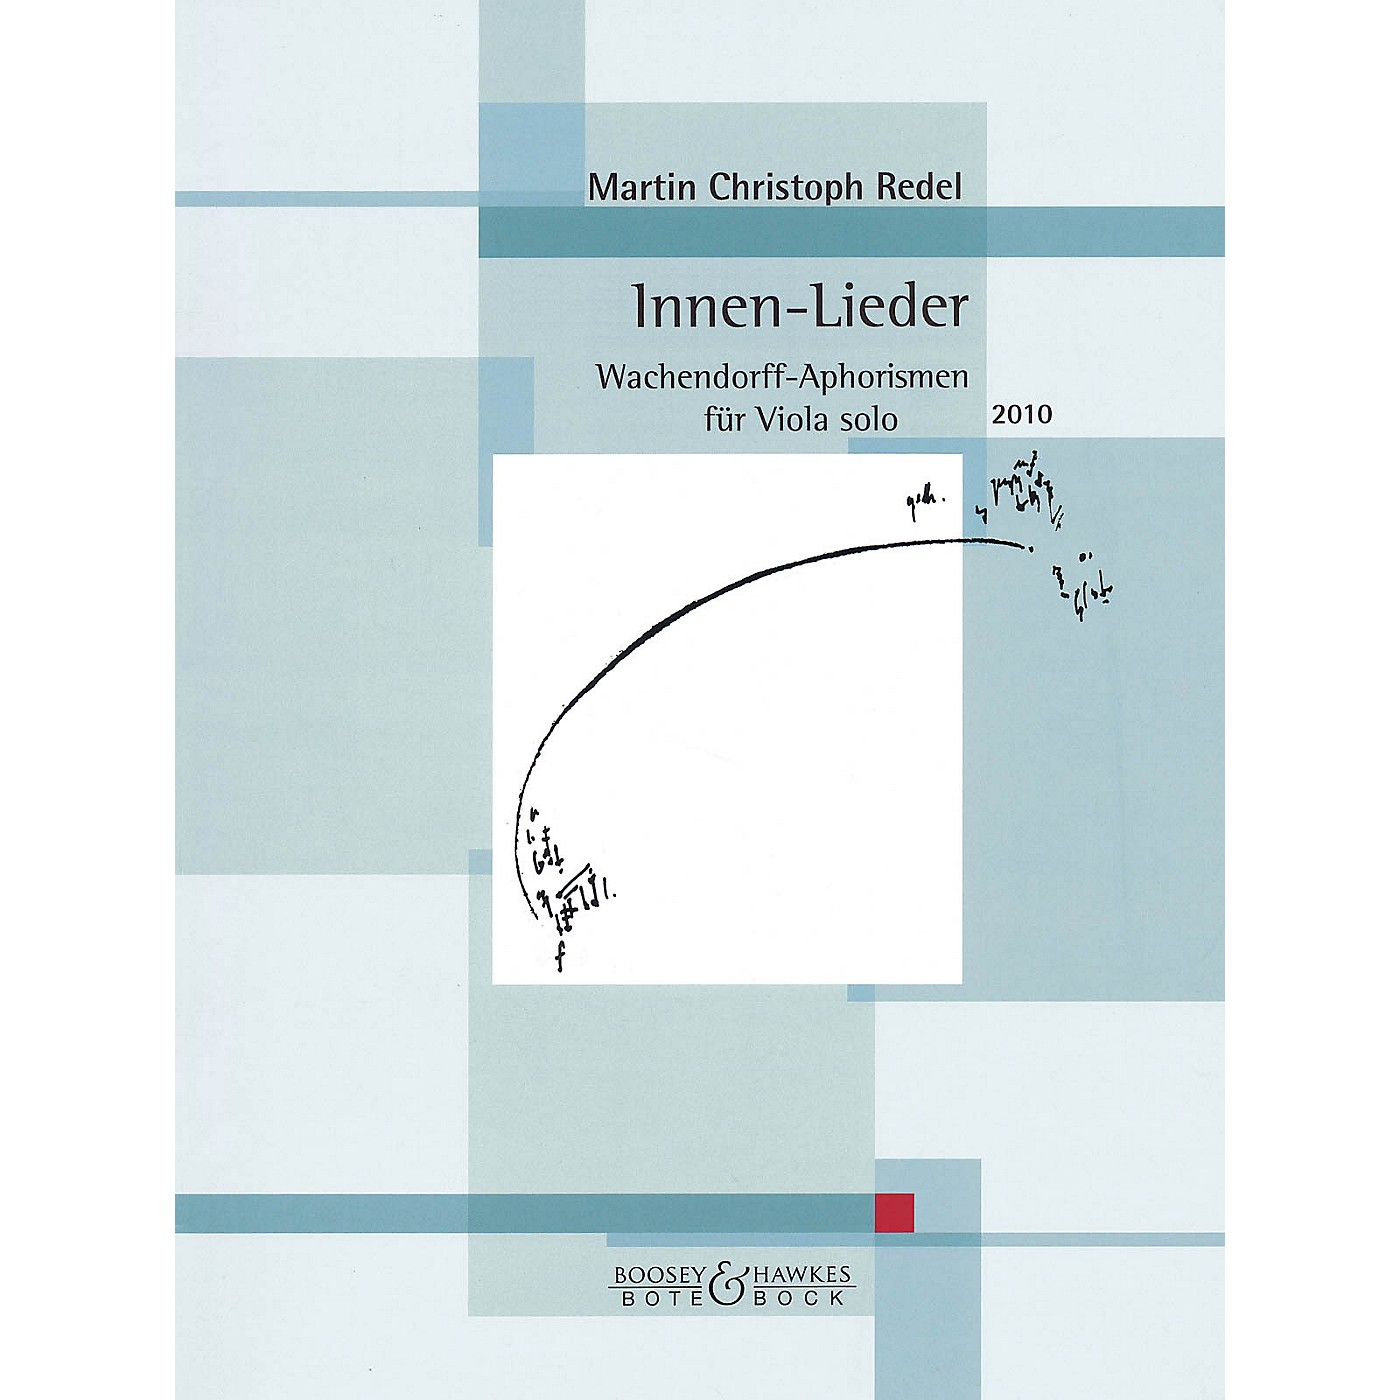 Bote & Bock Innen-Lieder, Op. 67 Boosey & Hawkes Chamber Music Series Softcover thumbnail